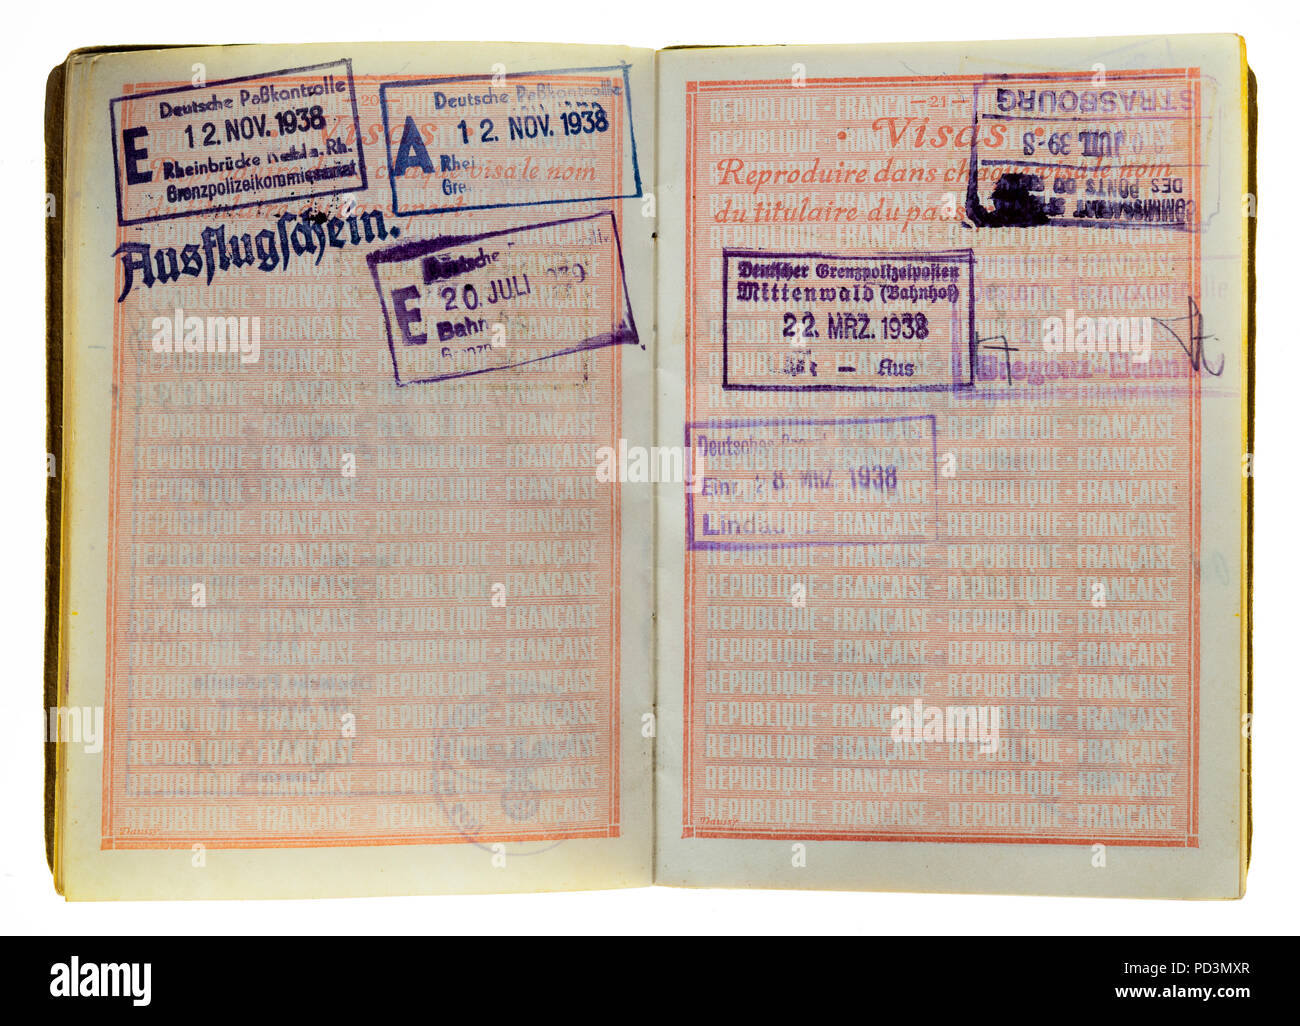 1935's vintage French passport, pages with 1938 German visas stamps marks, - Stock Image